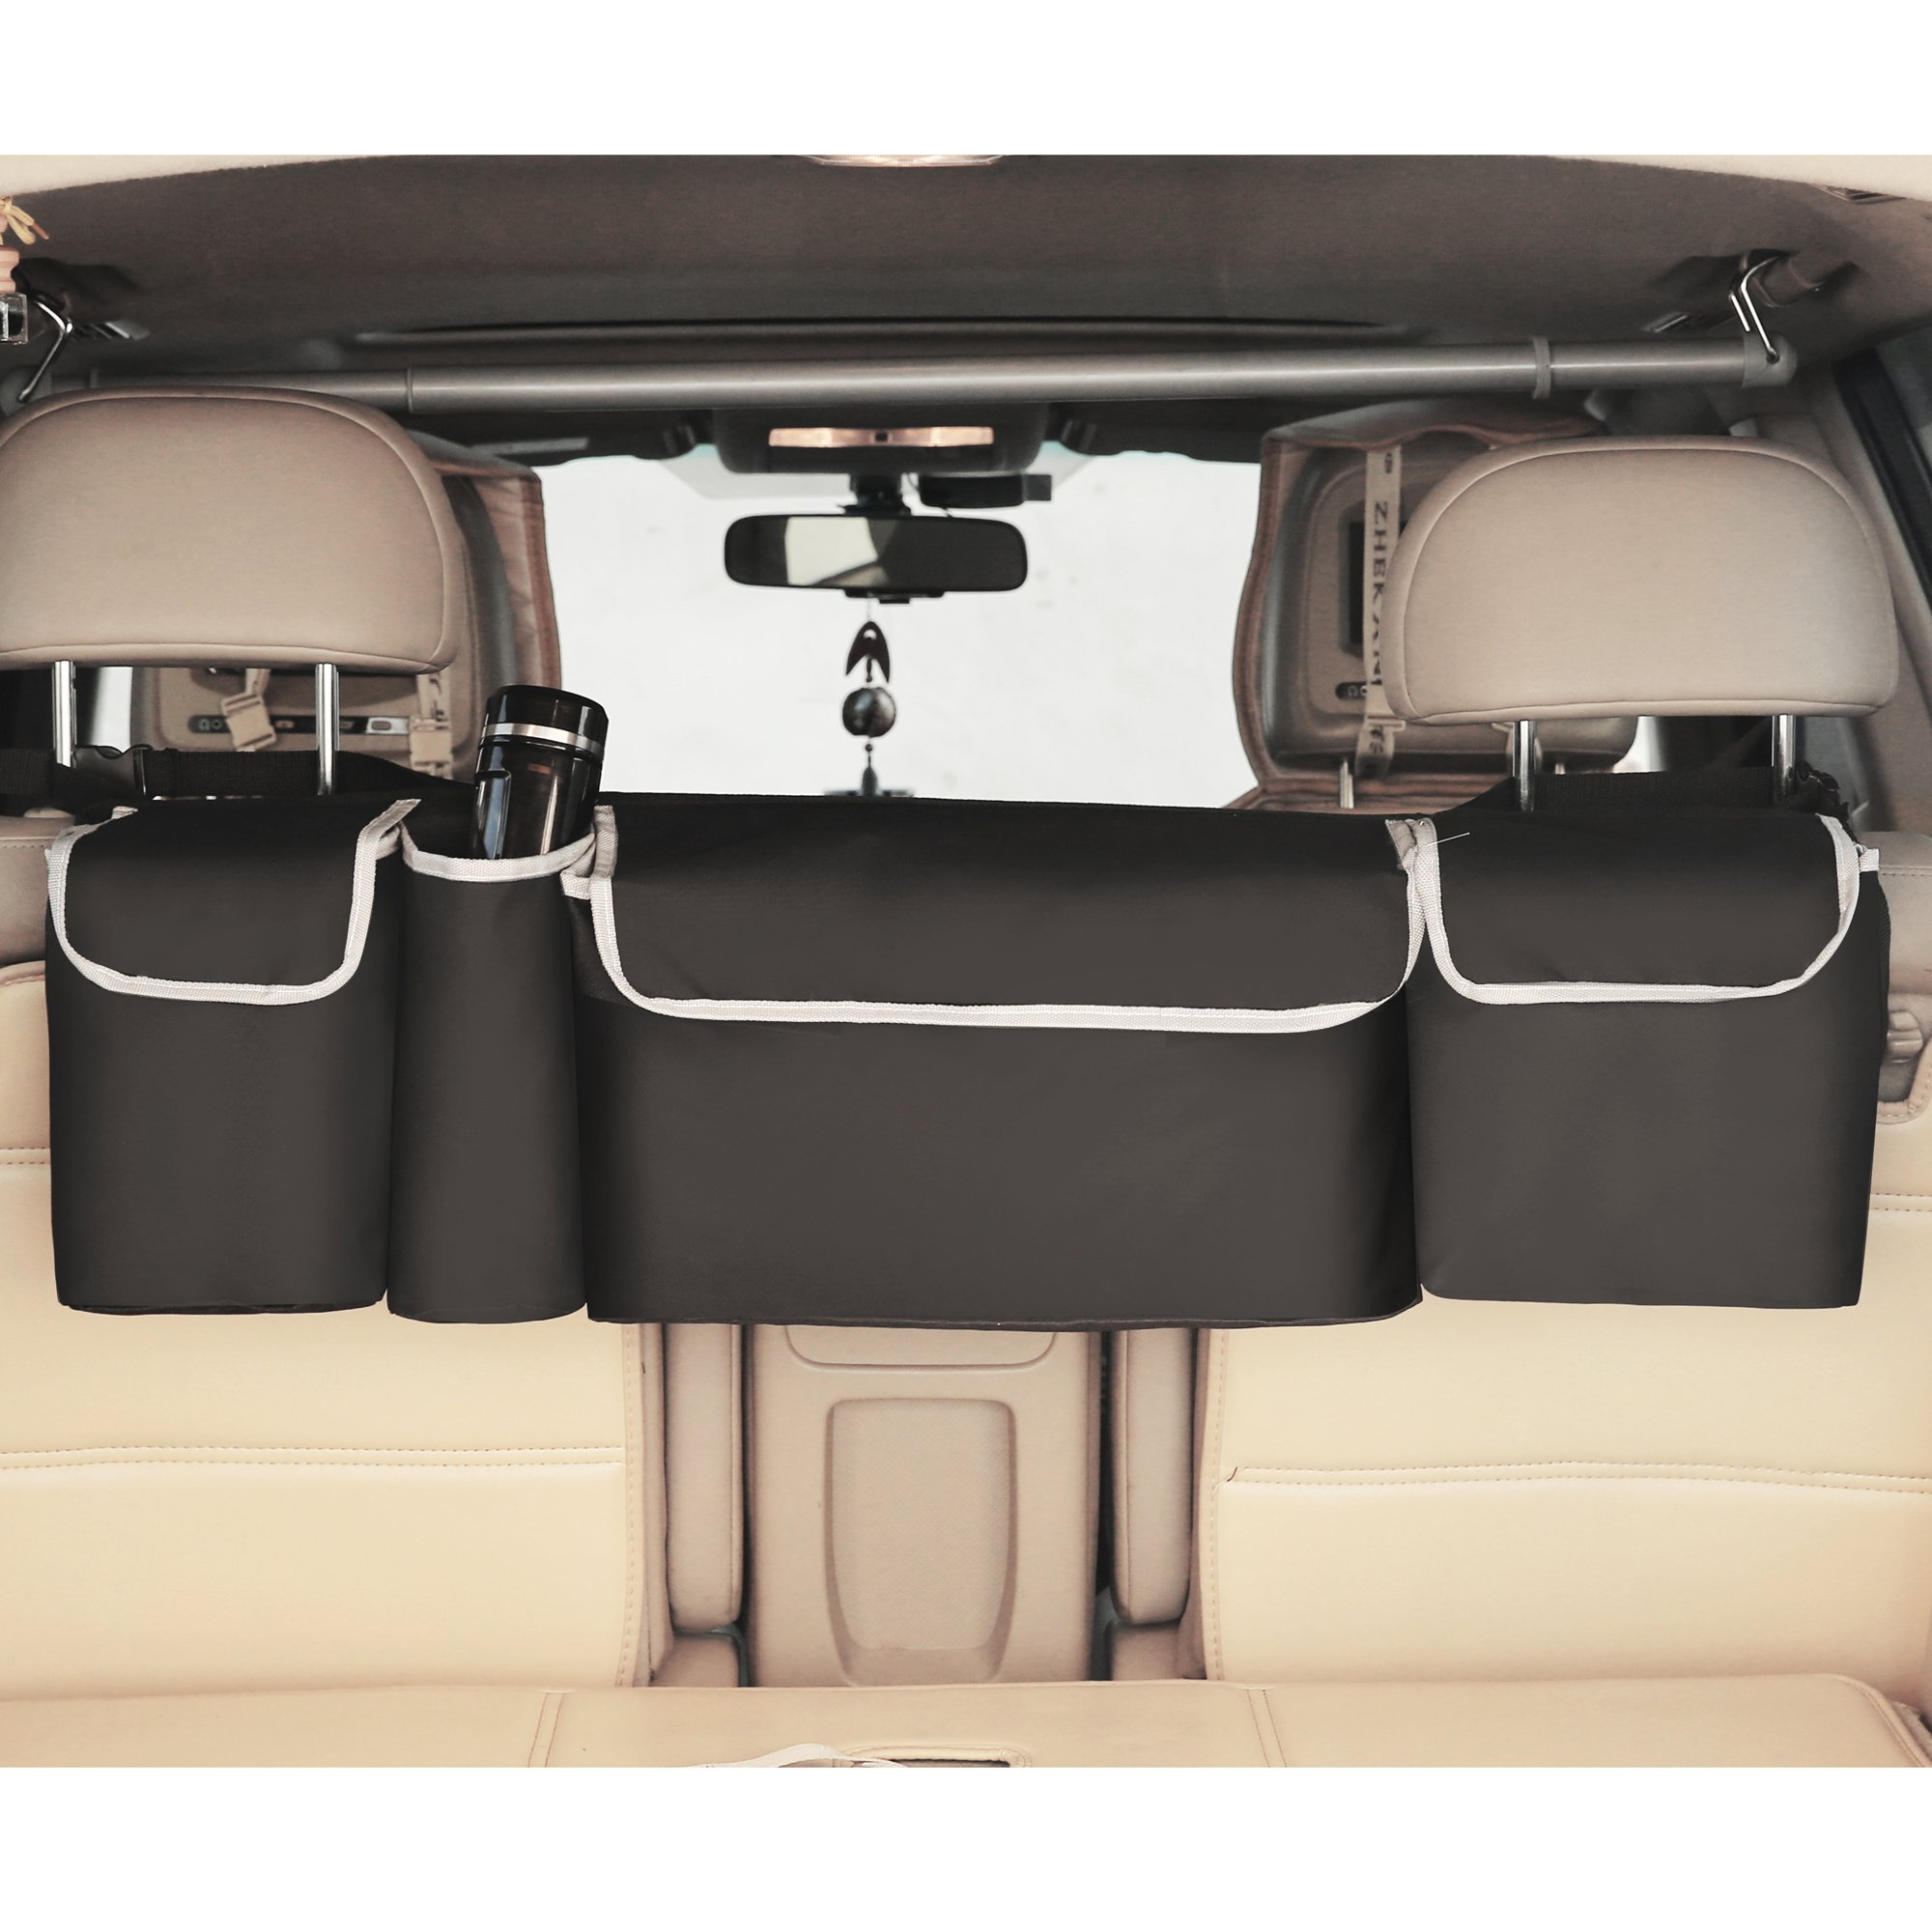 Trunk Organizer 2 in 1 - Space Saving, High Capacity Auto Backseat and Trunk Storage - Fits Any Car, SUV or Van Using Fully Adjustable Straps by LOONGCN